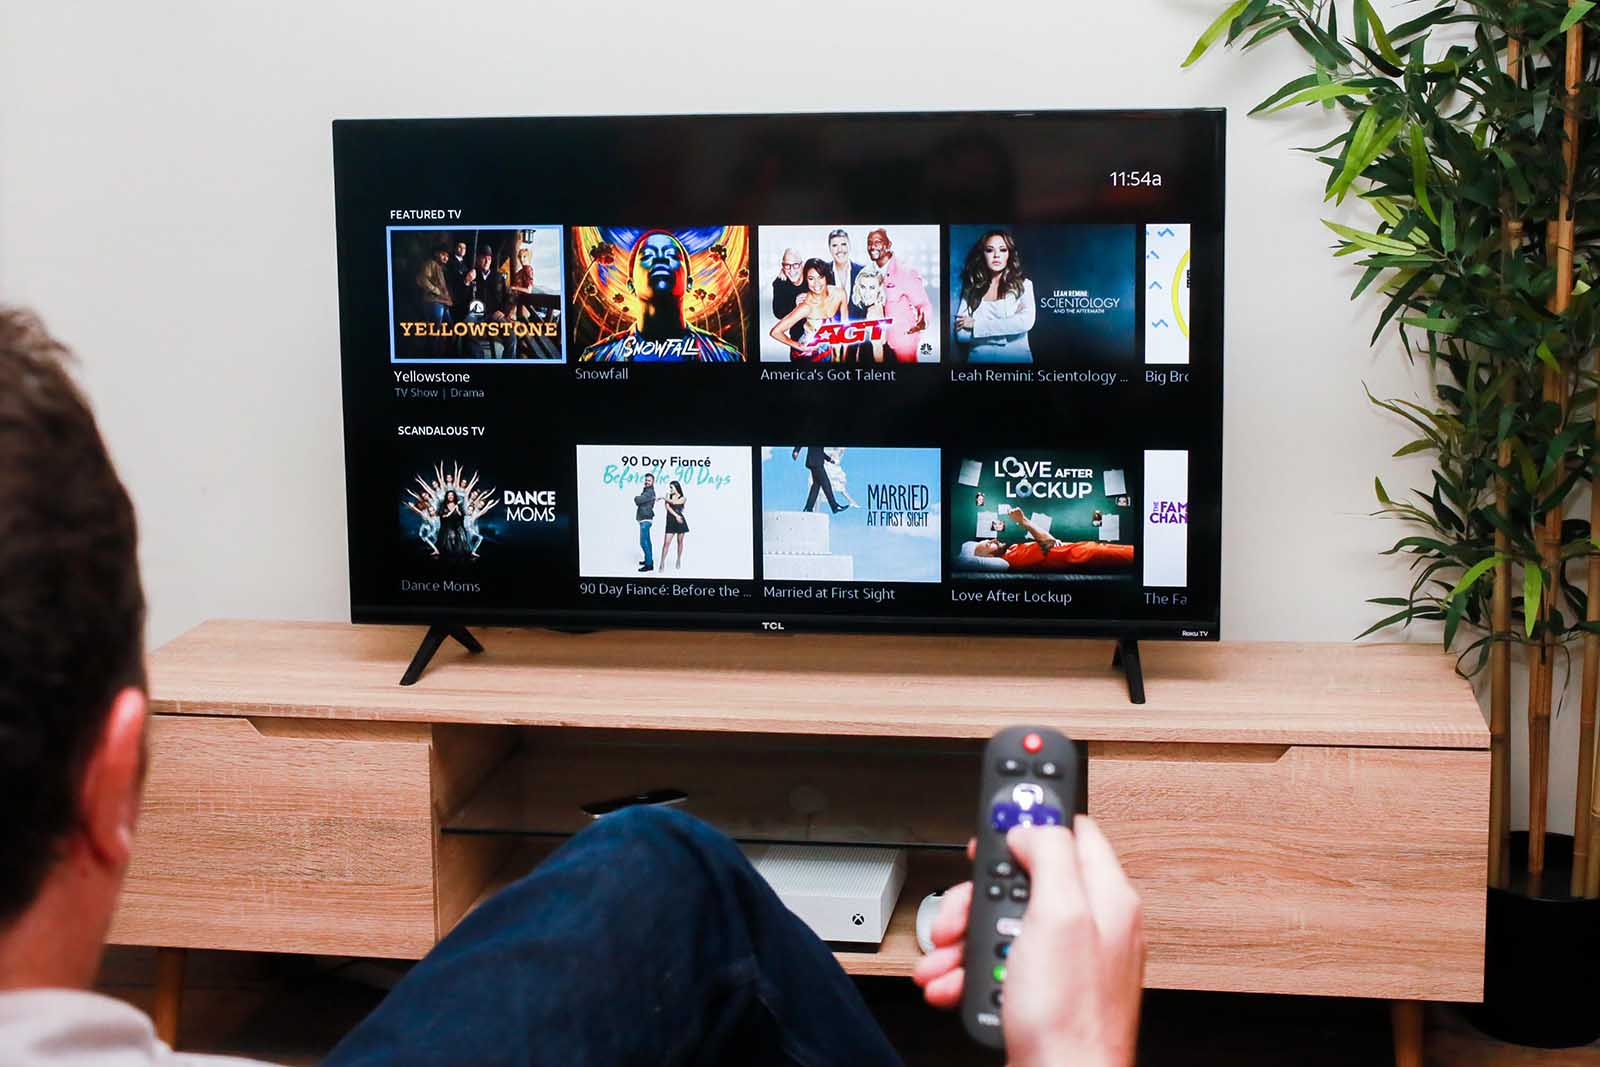 2020 saw a huge increase in streaming, which meant the Nielsen Company had to change their ratings system. See the craziest numbers from streaming in 2020.